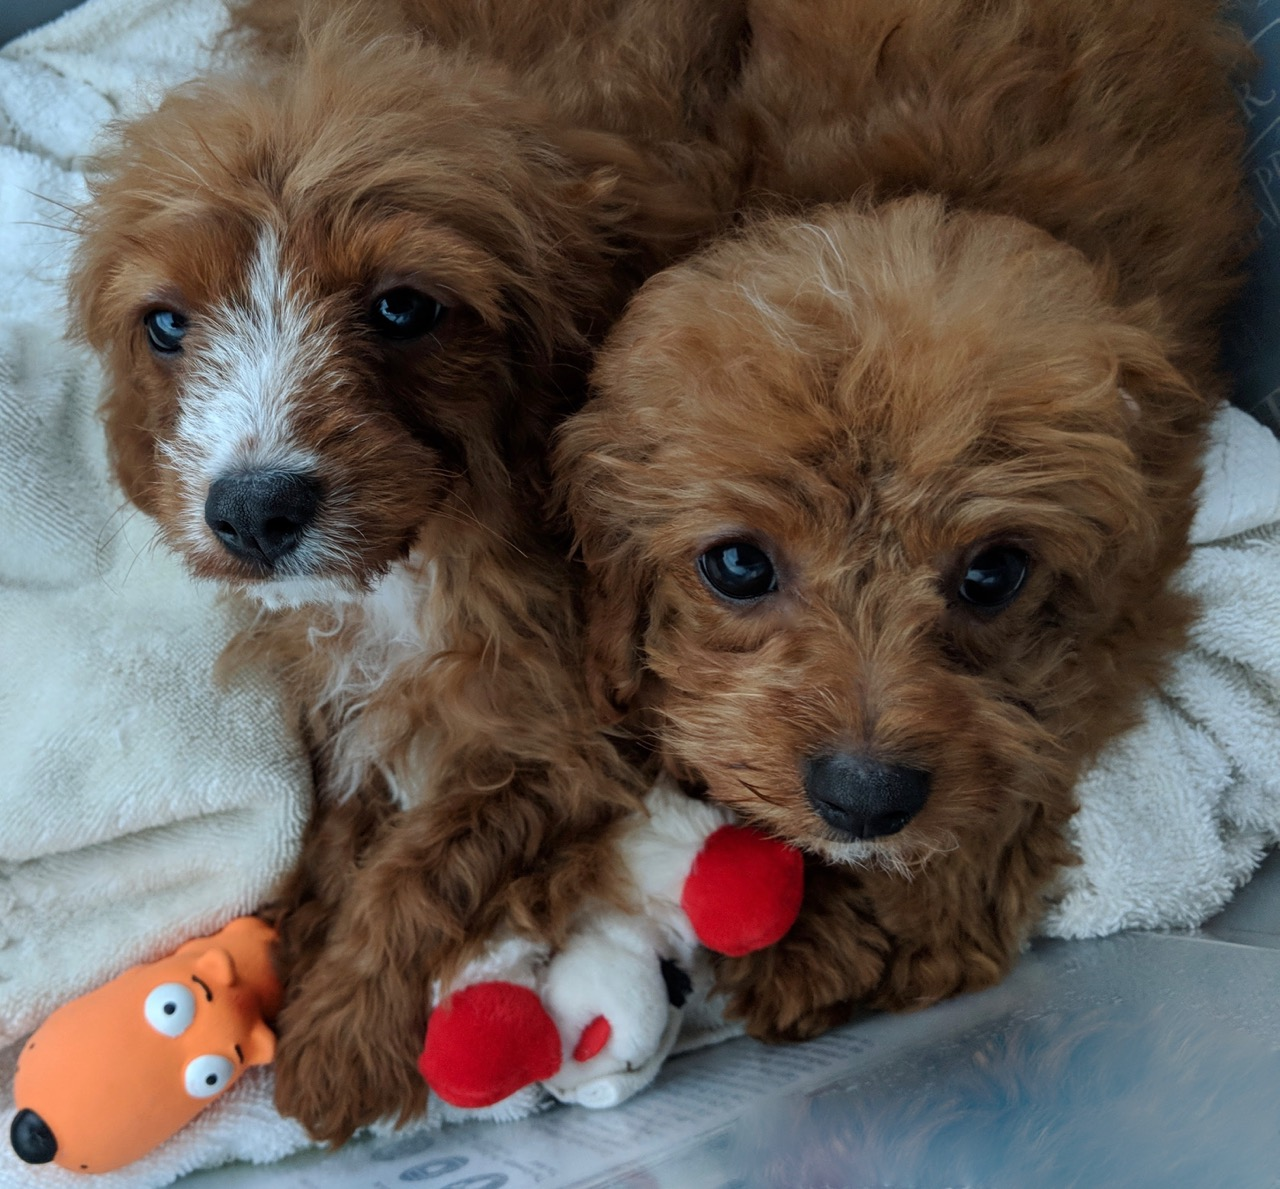 Little Cavapoo puppy sisters.